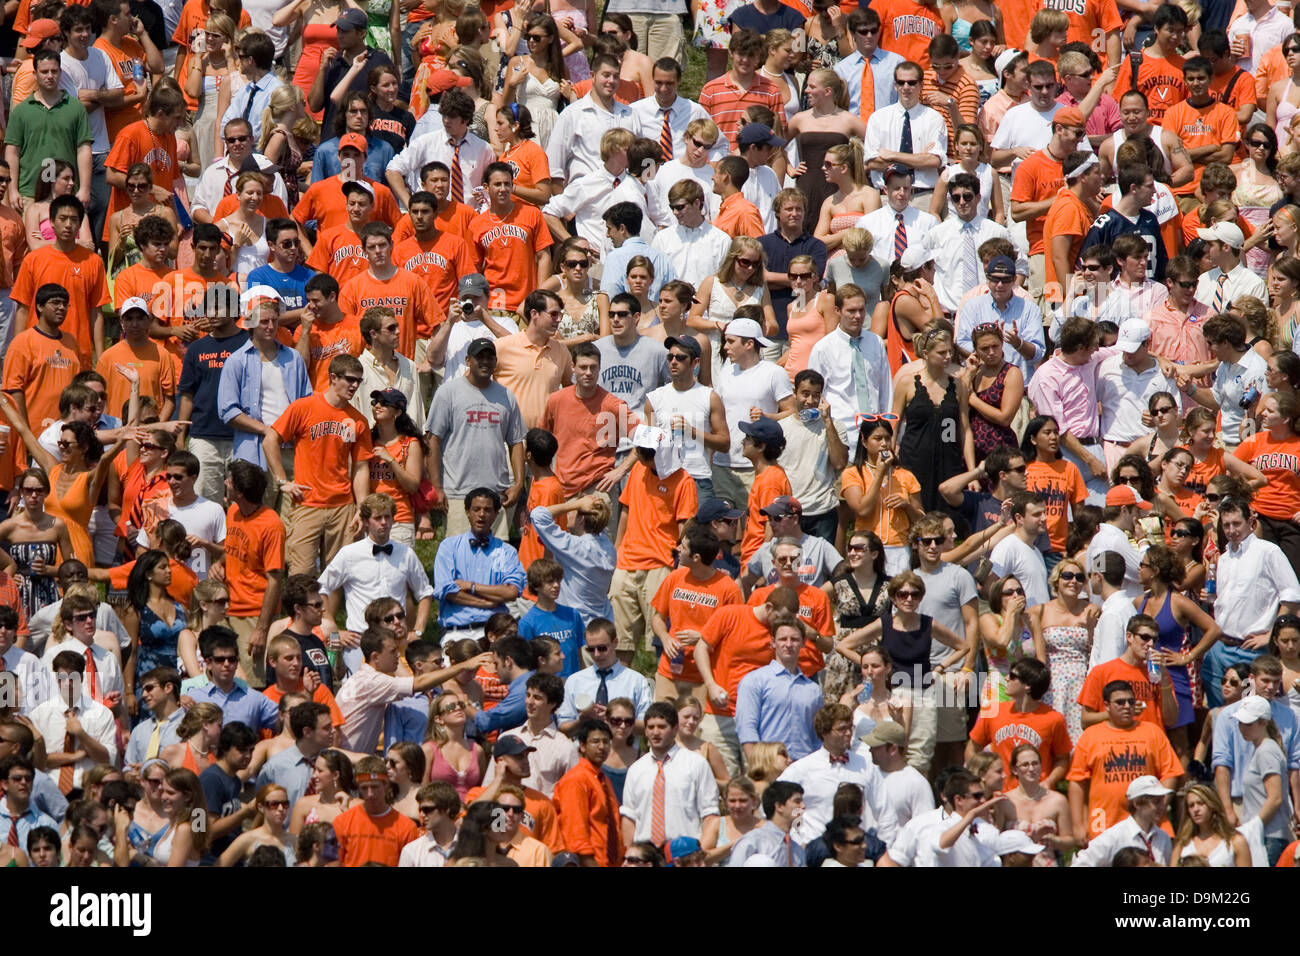 General View Of The University Of Virginia Student Section